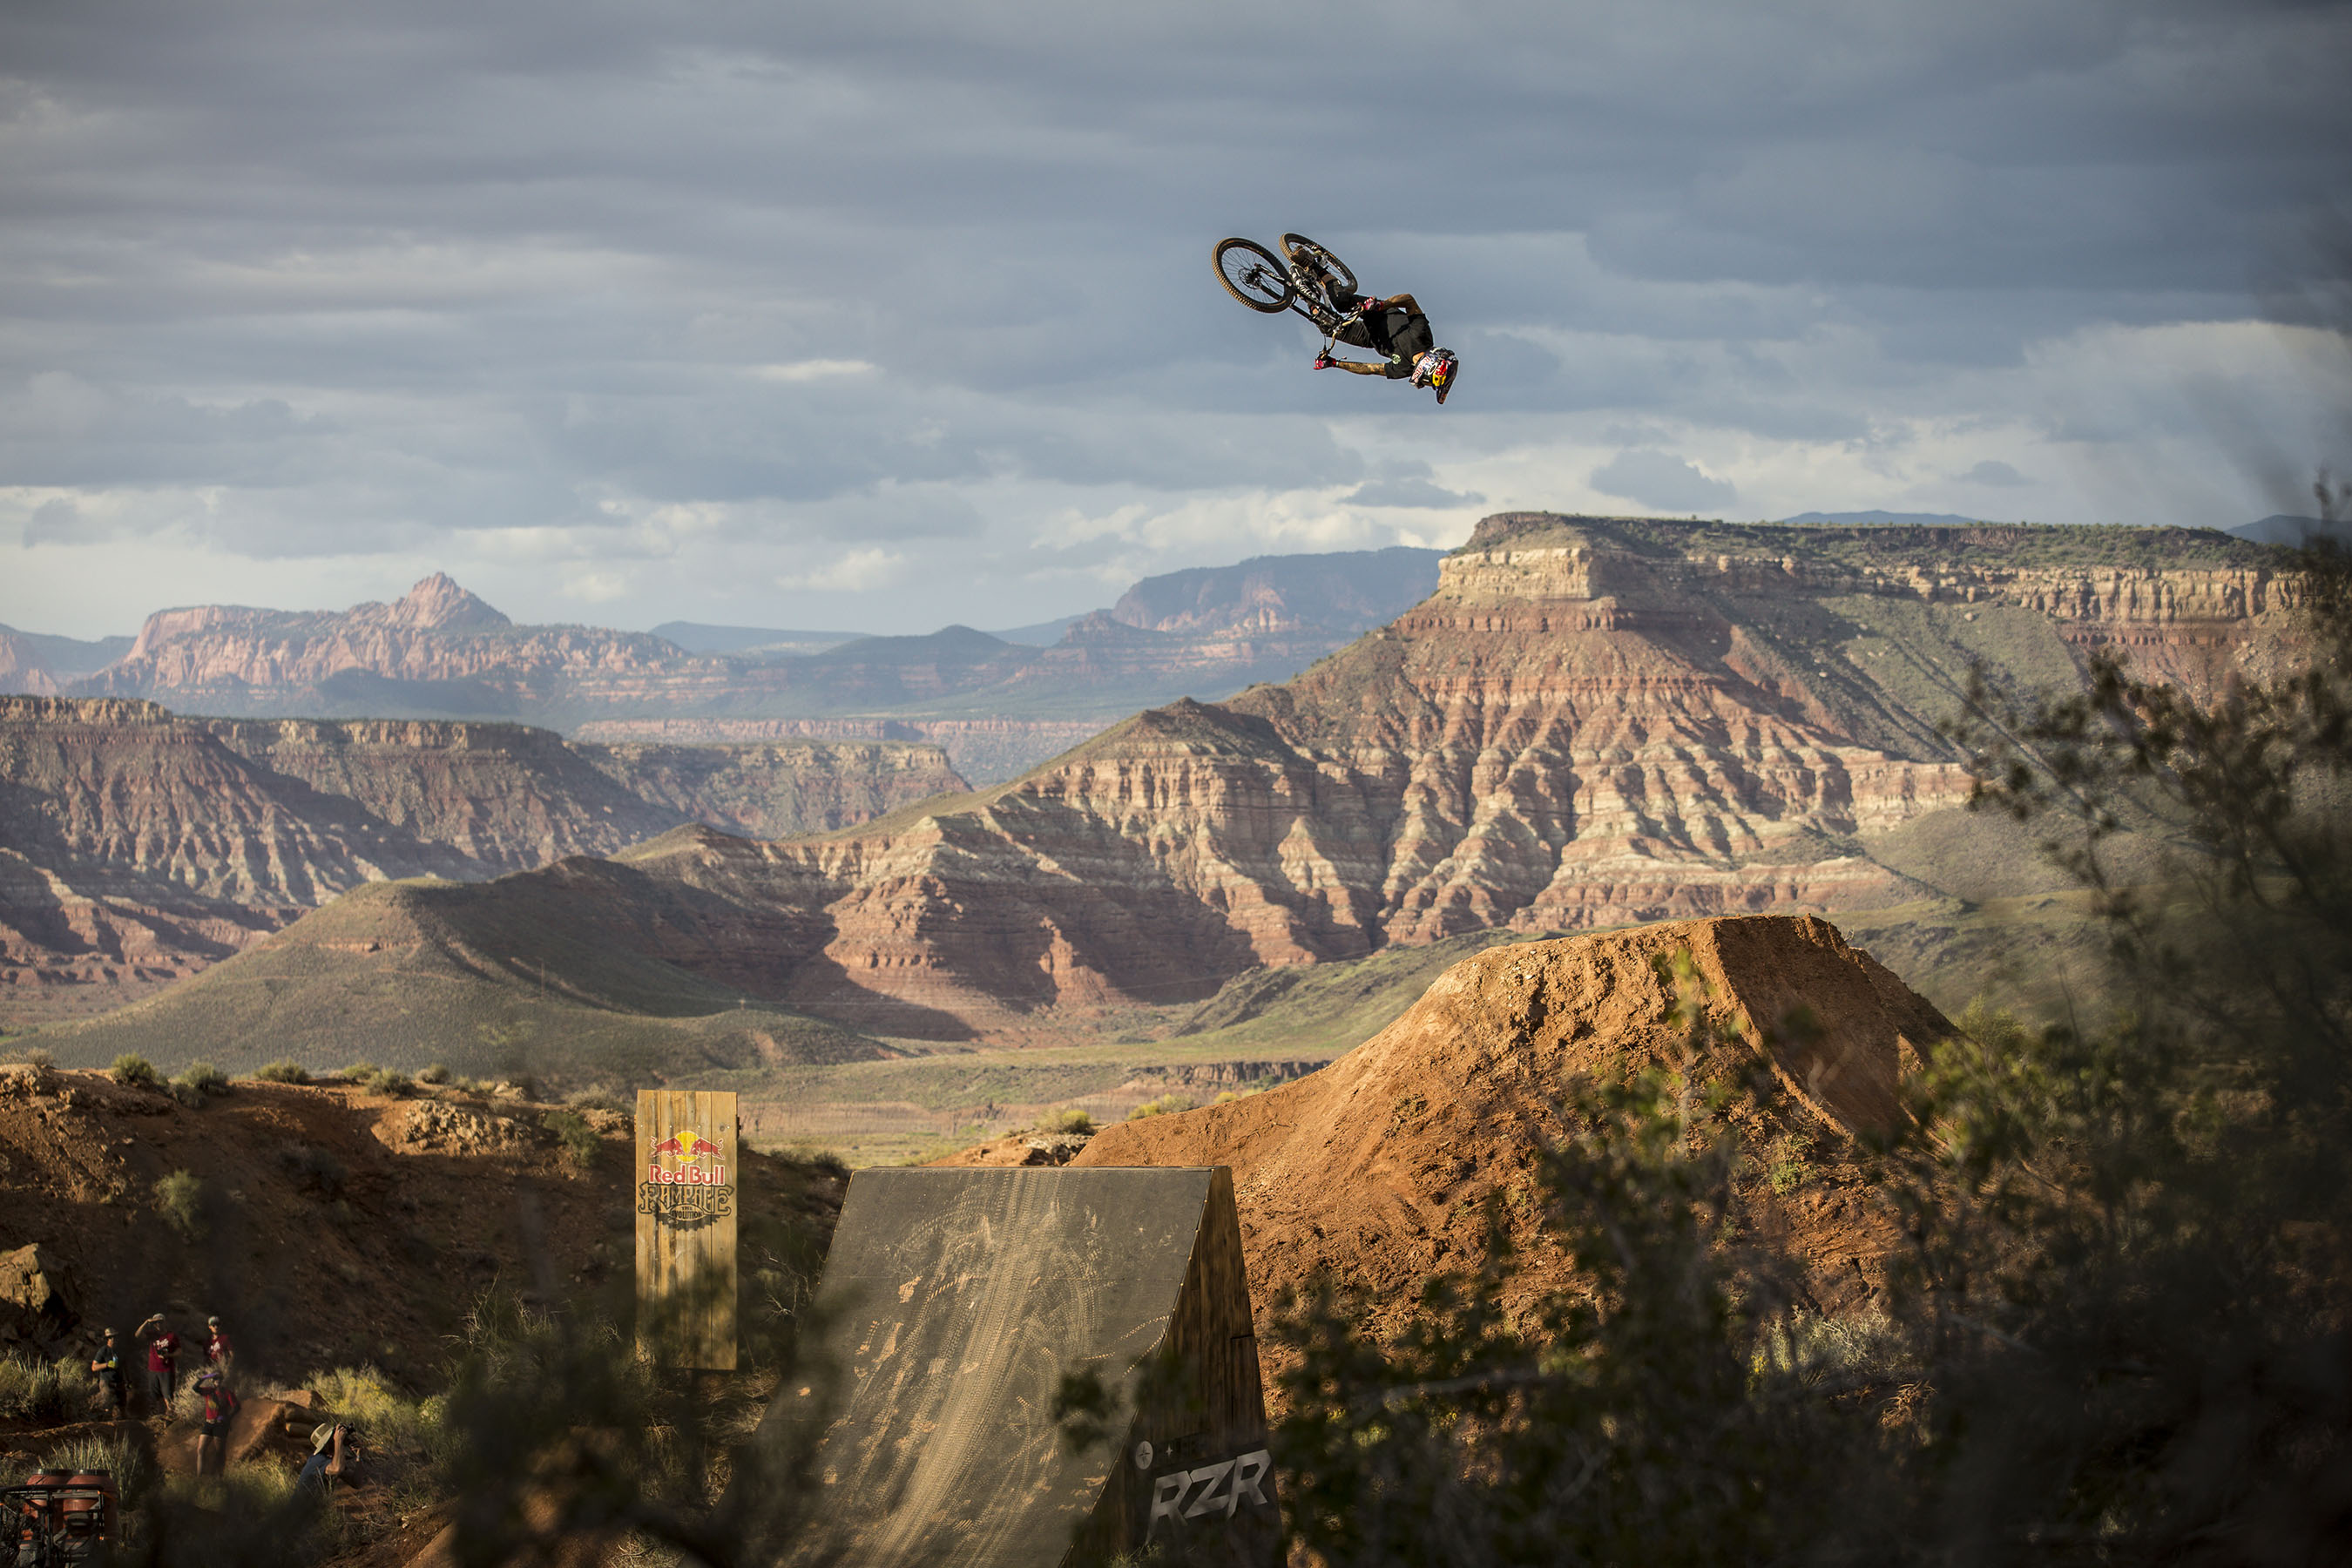 Spain's Andreu Lacondeguy returns in 2015 to defend his Red Bull Rampage title